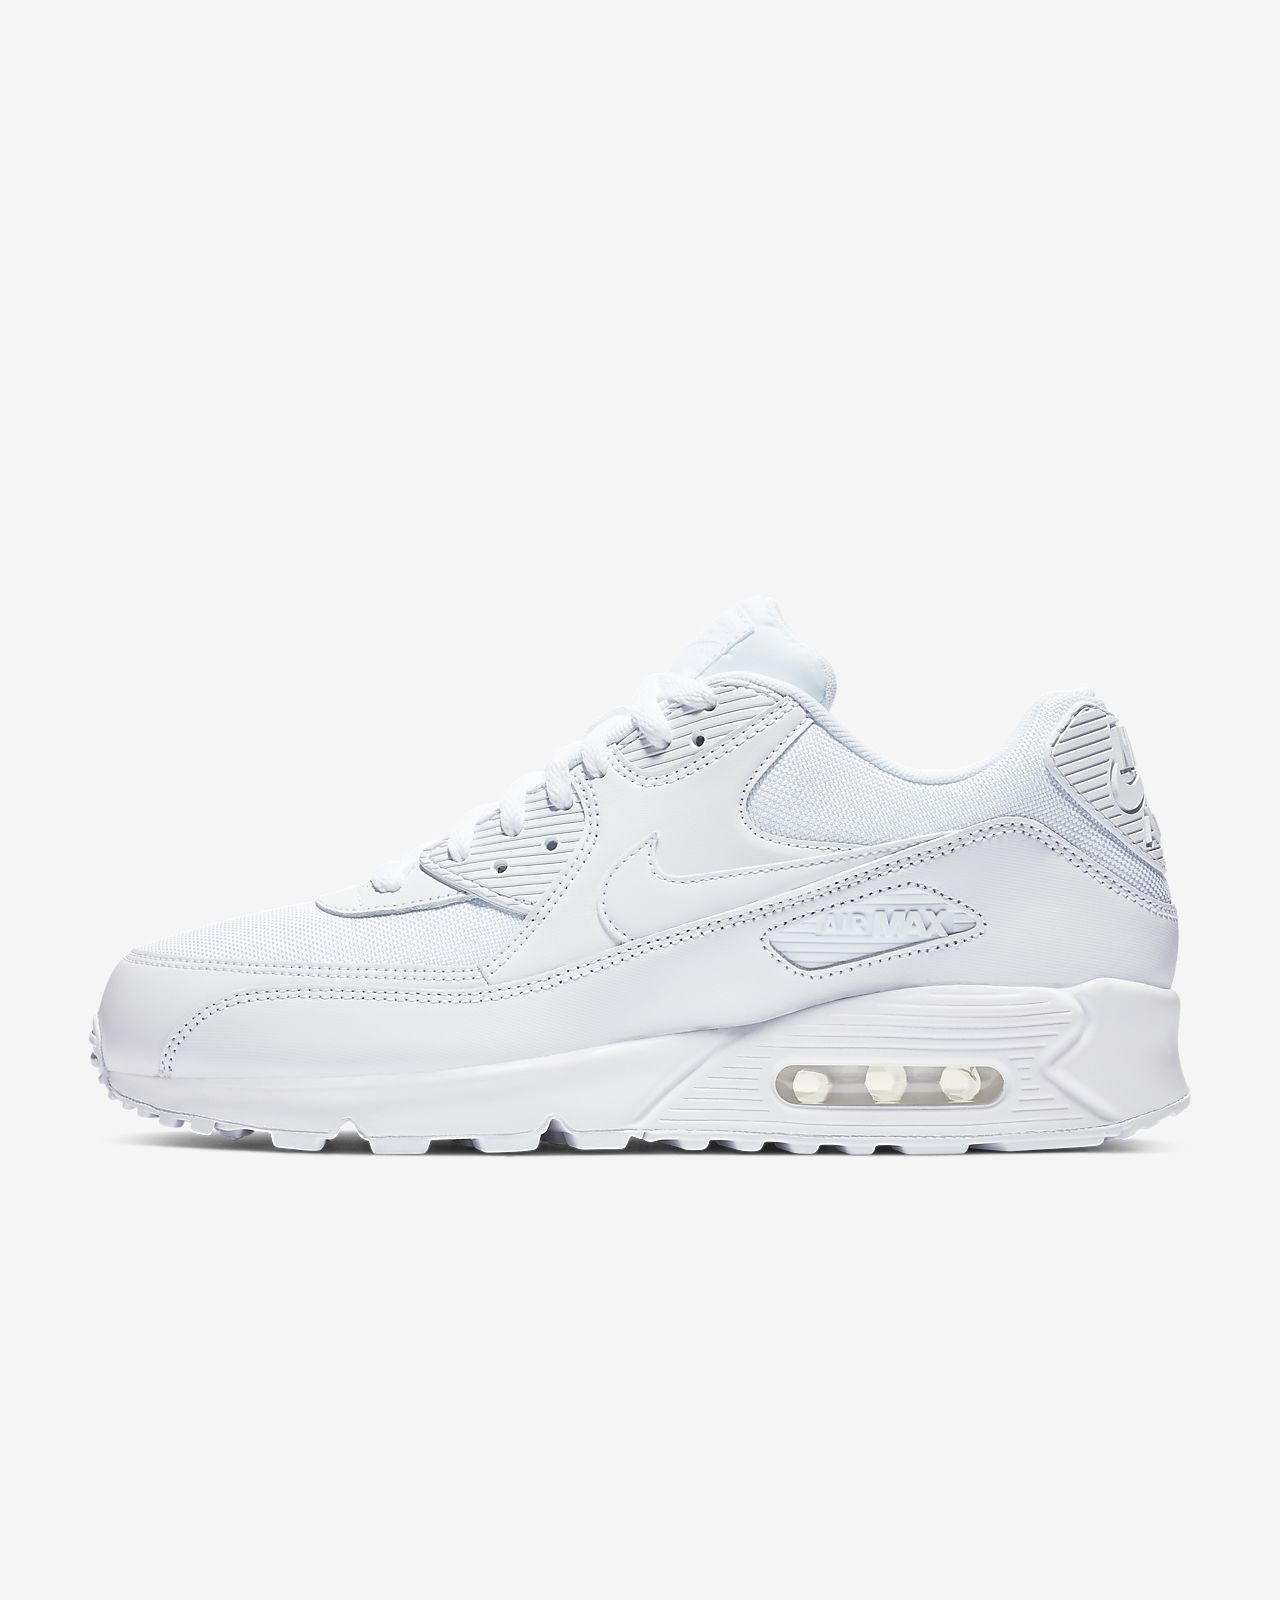 reputable site 50ccc 25c0f Nike Air Max 90 Essential